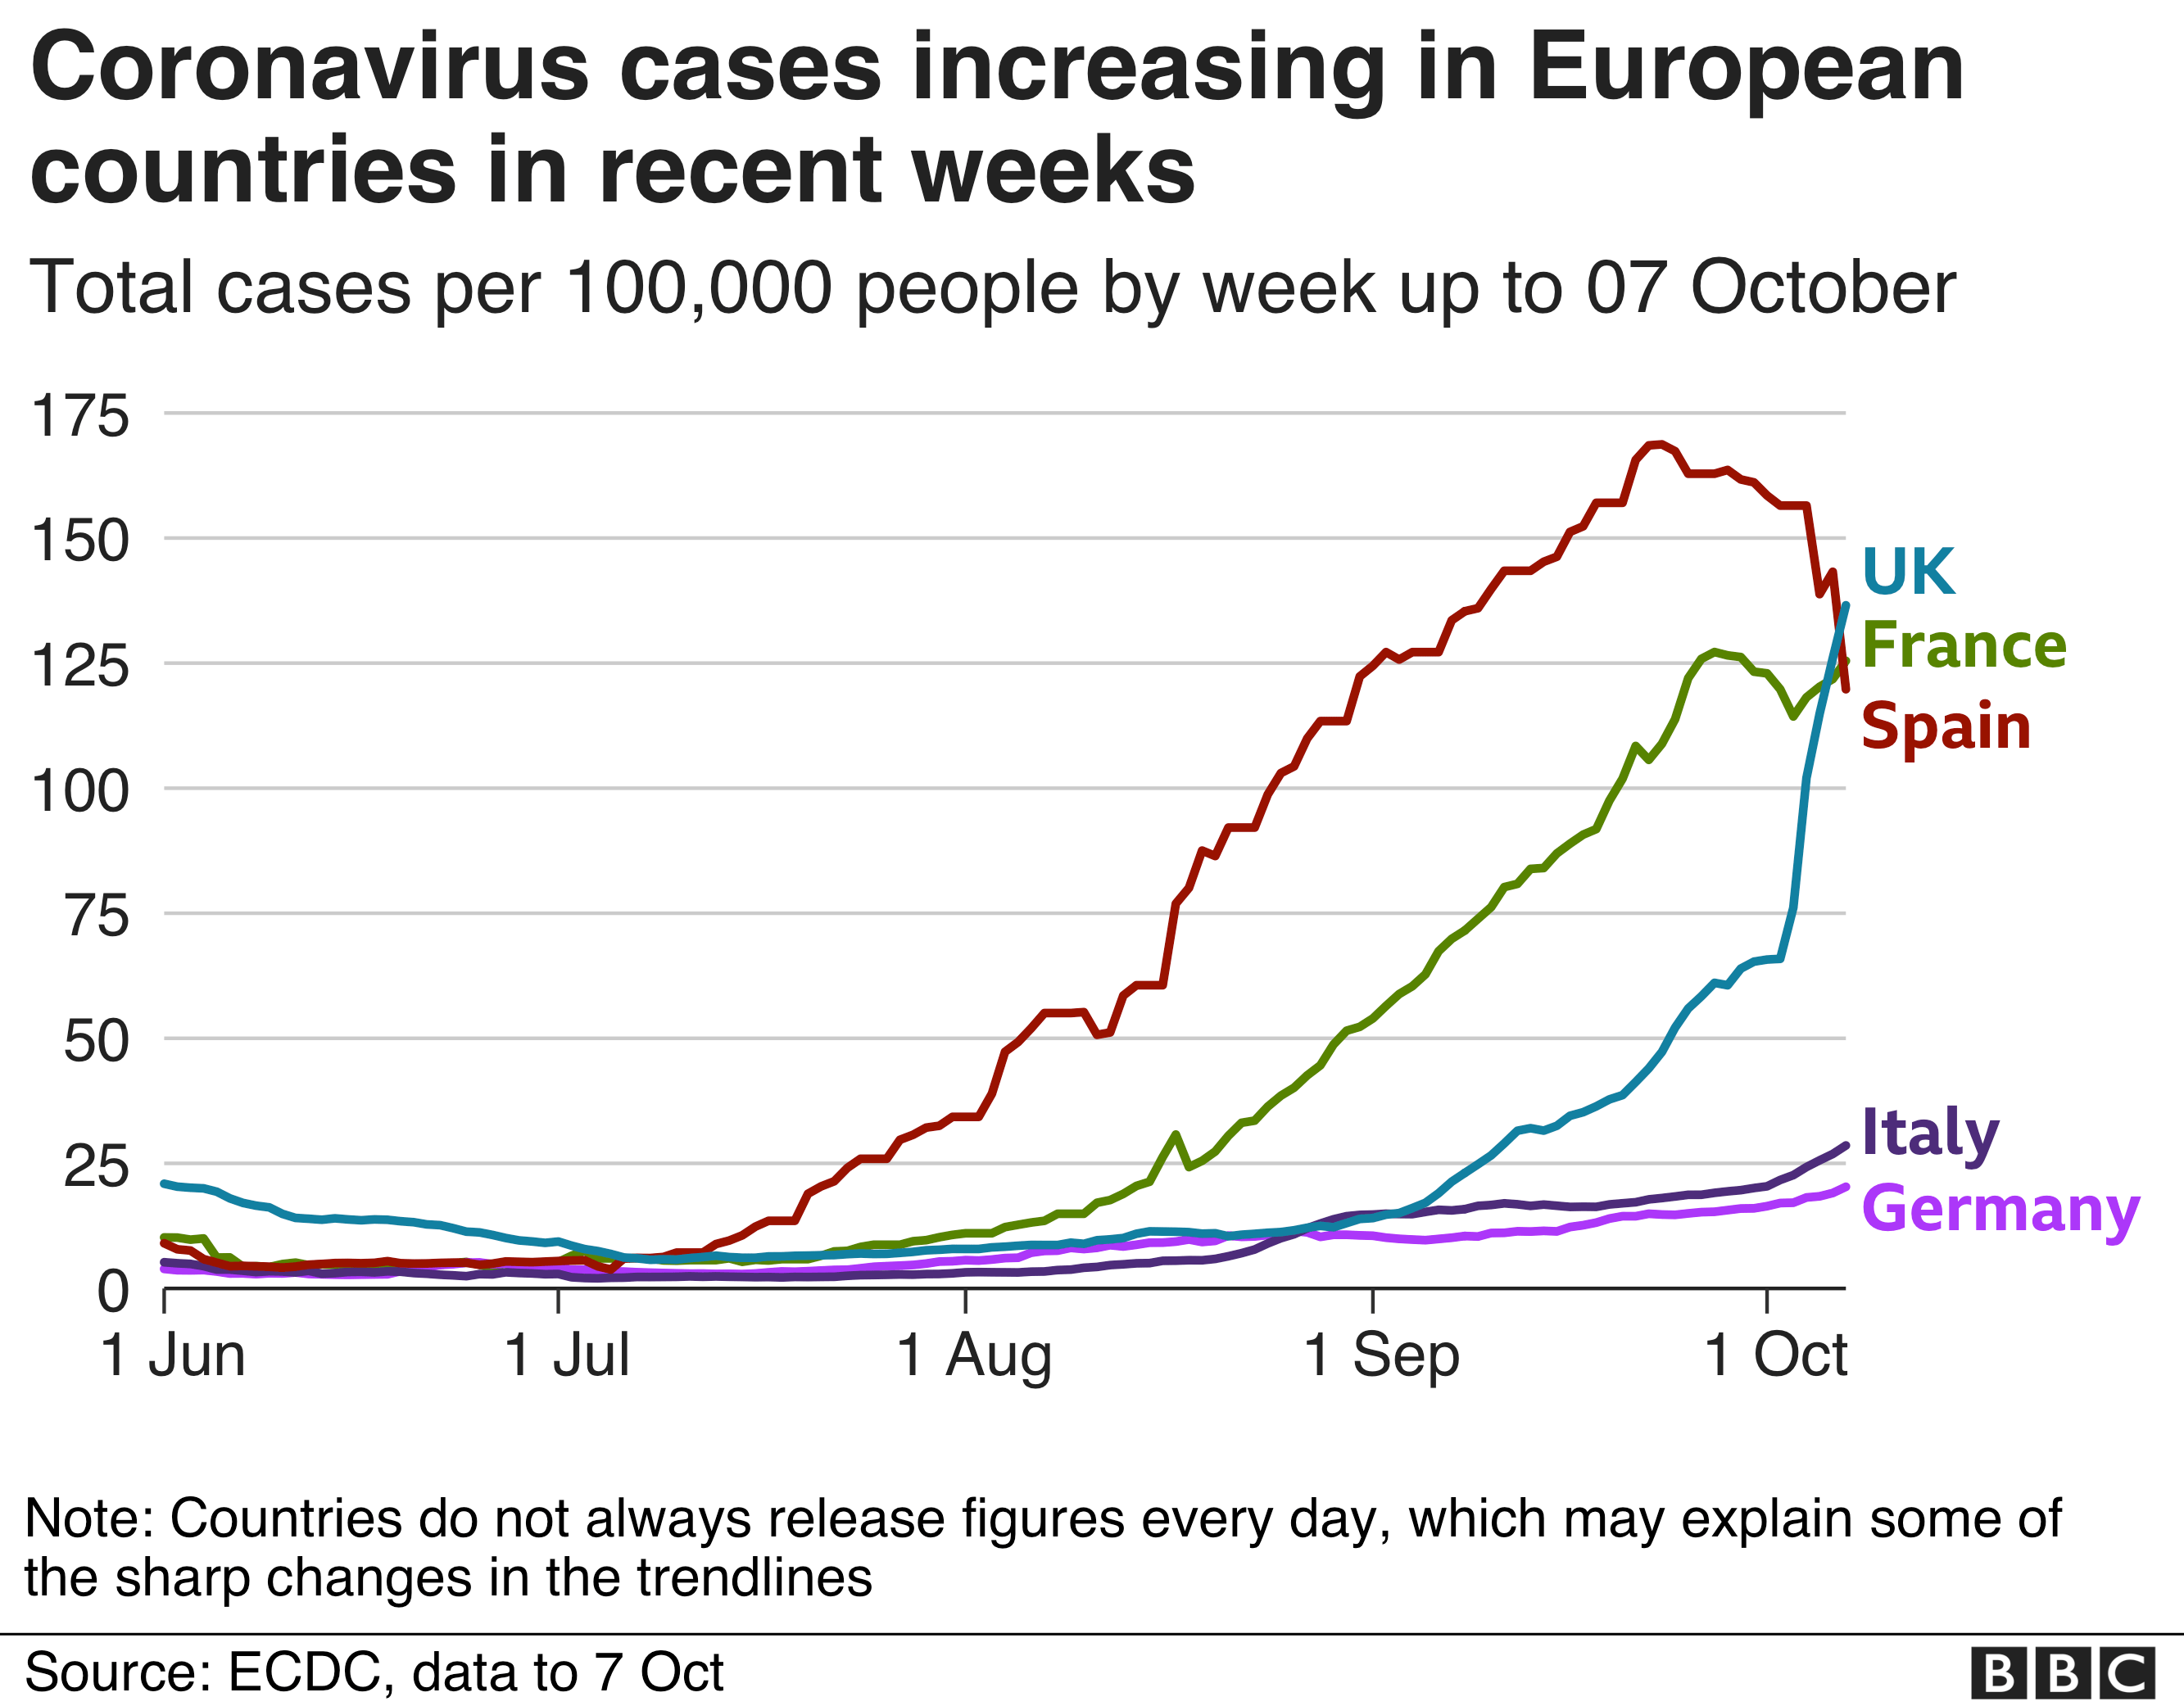 Line chart shows cases increasing in France and UK while Spain's now appear to be coming down and Italy and Germany have remained stable